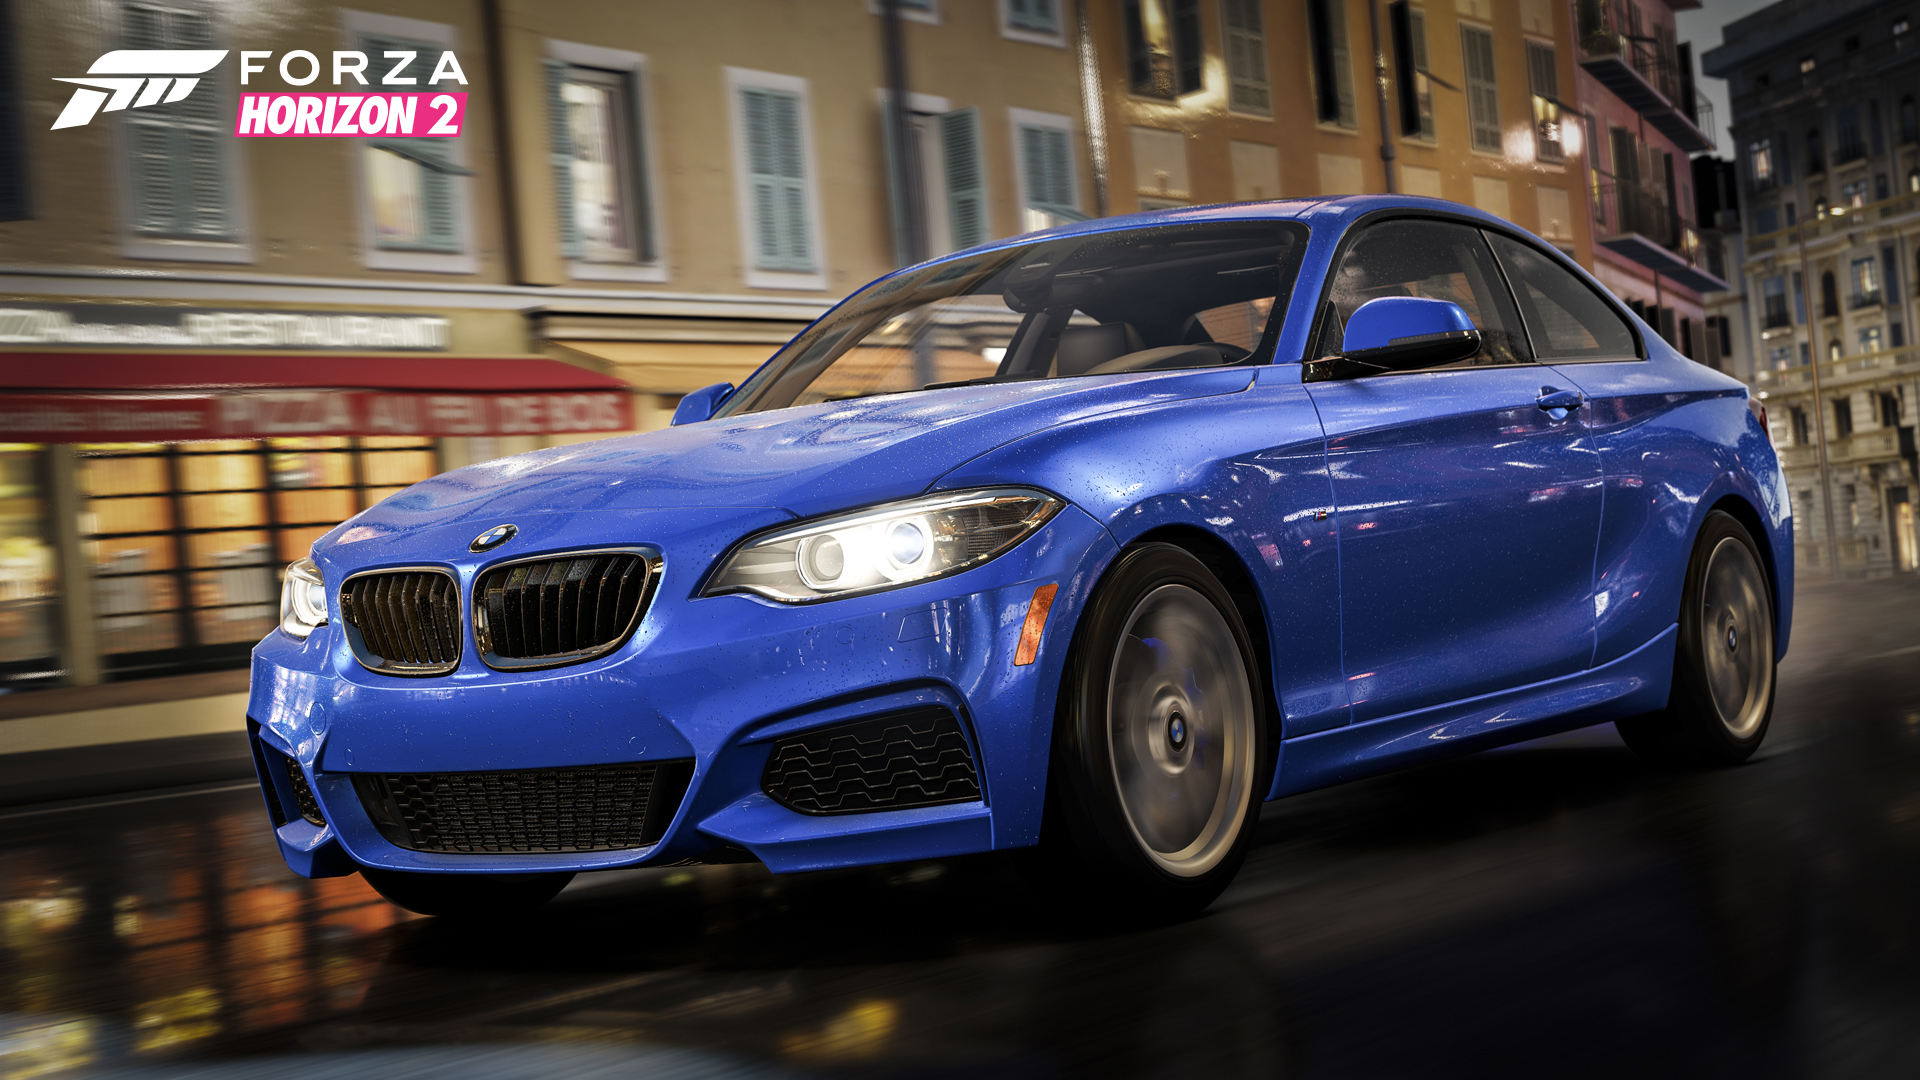 Top Gear Pack Out Now For Forza Horizon 2